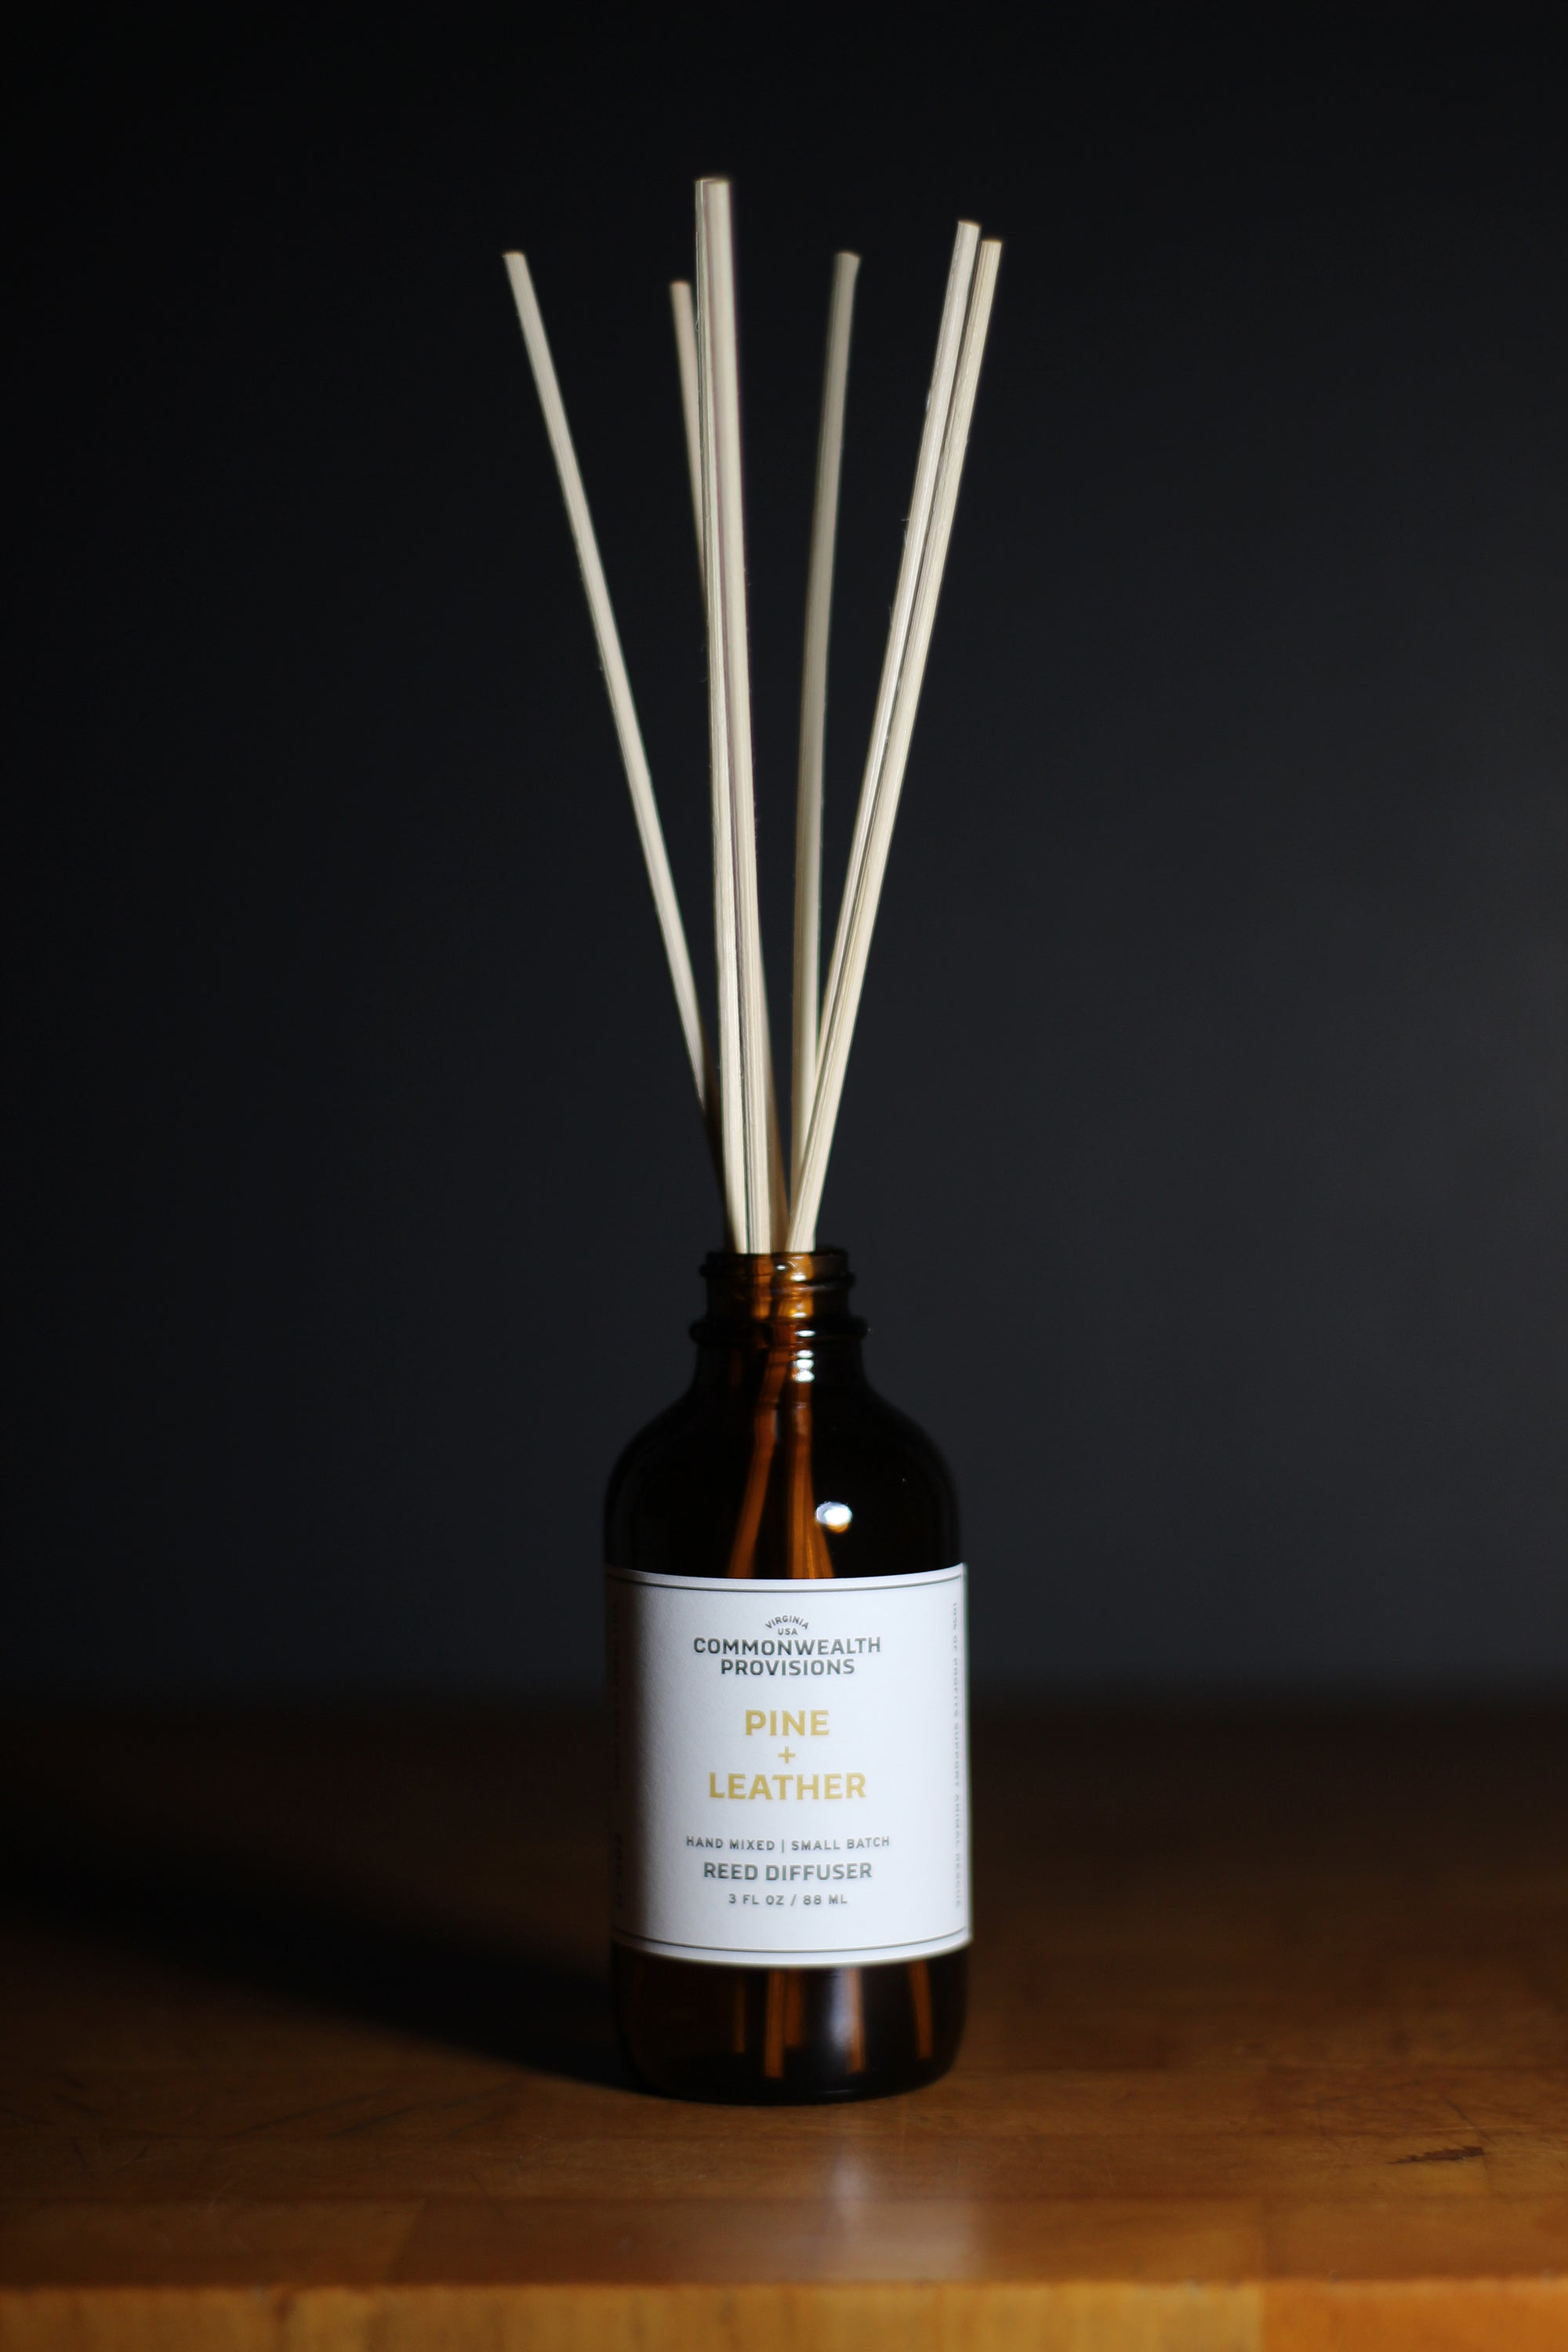 Commonwealth Provisions Pine + Leather Reed Diffuser